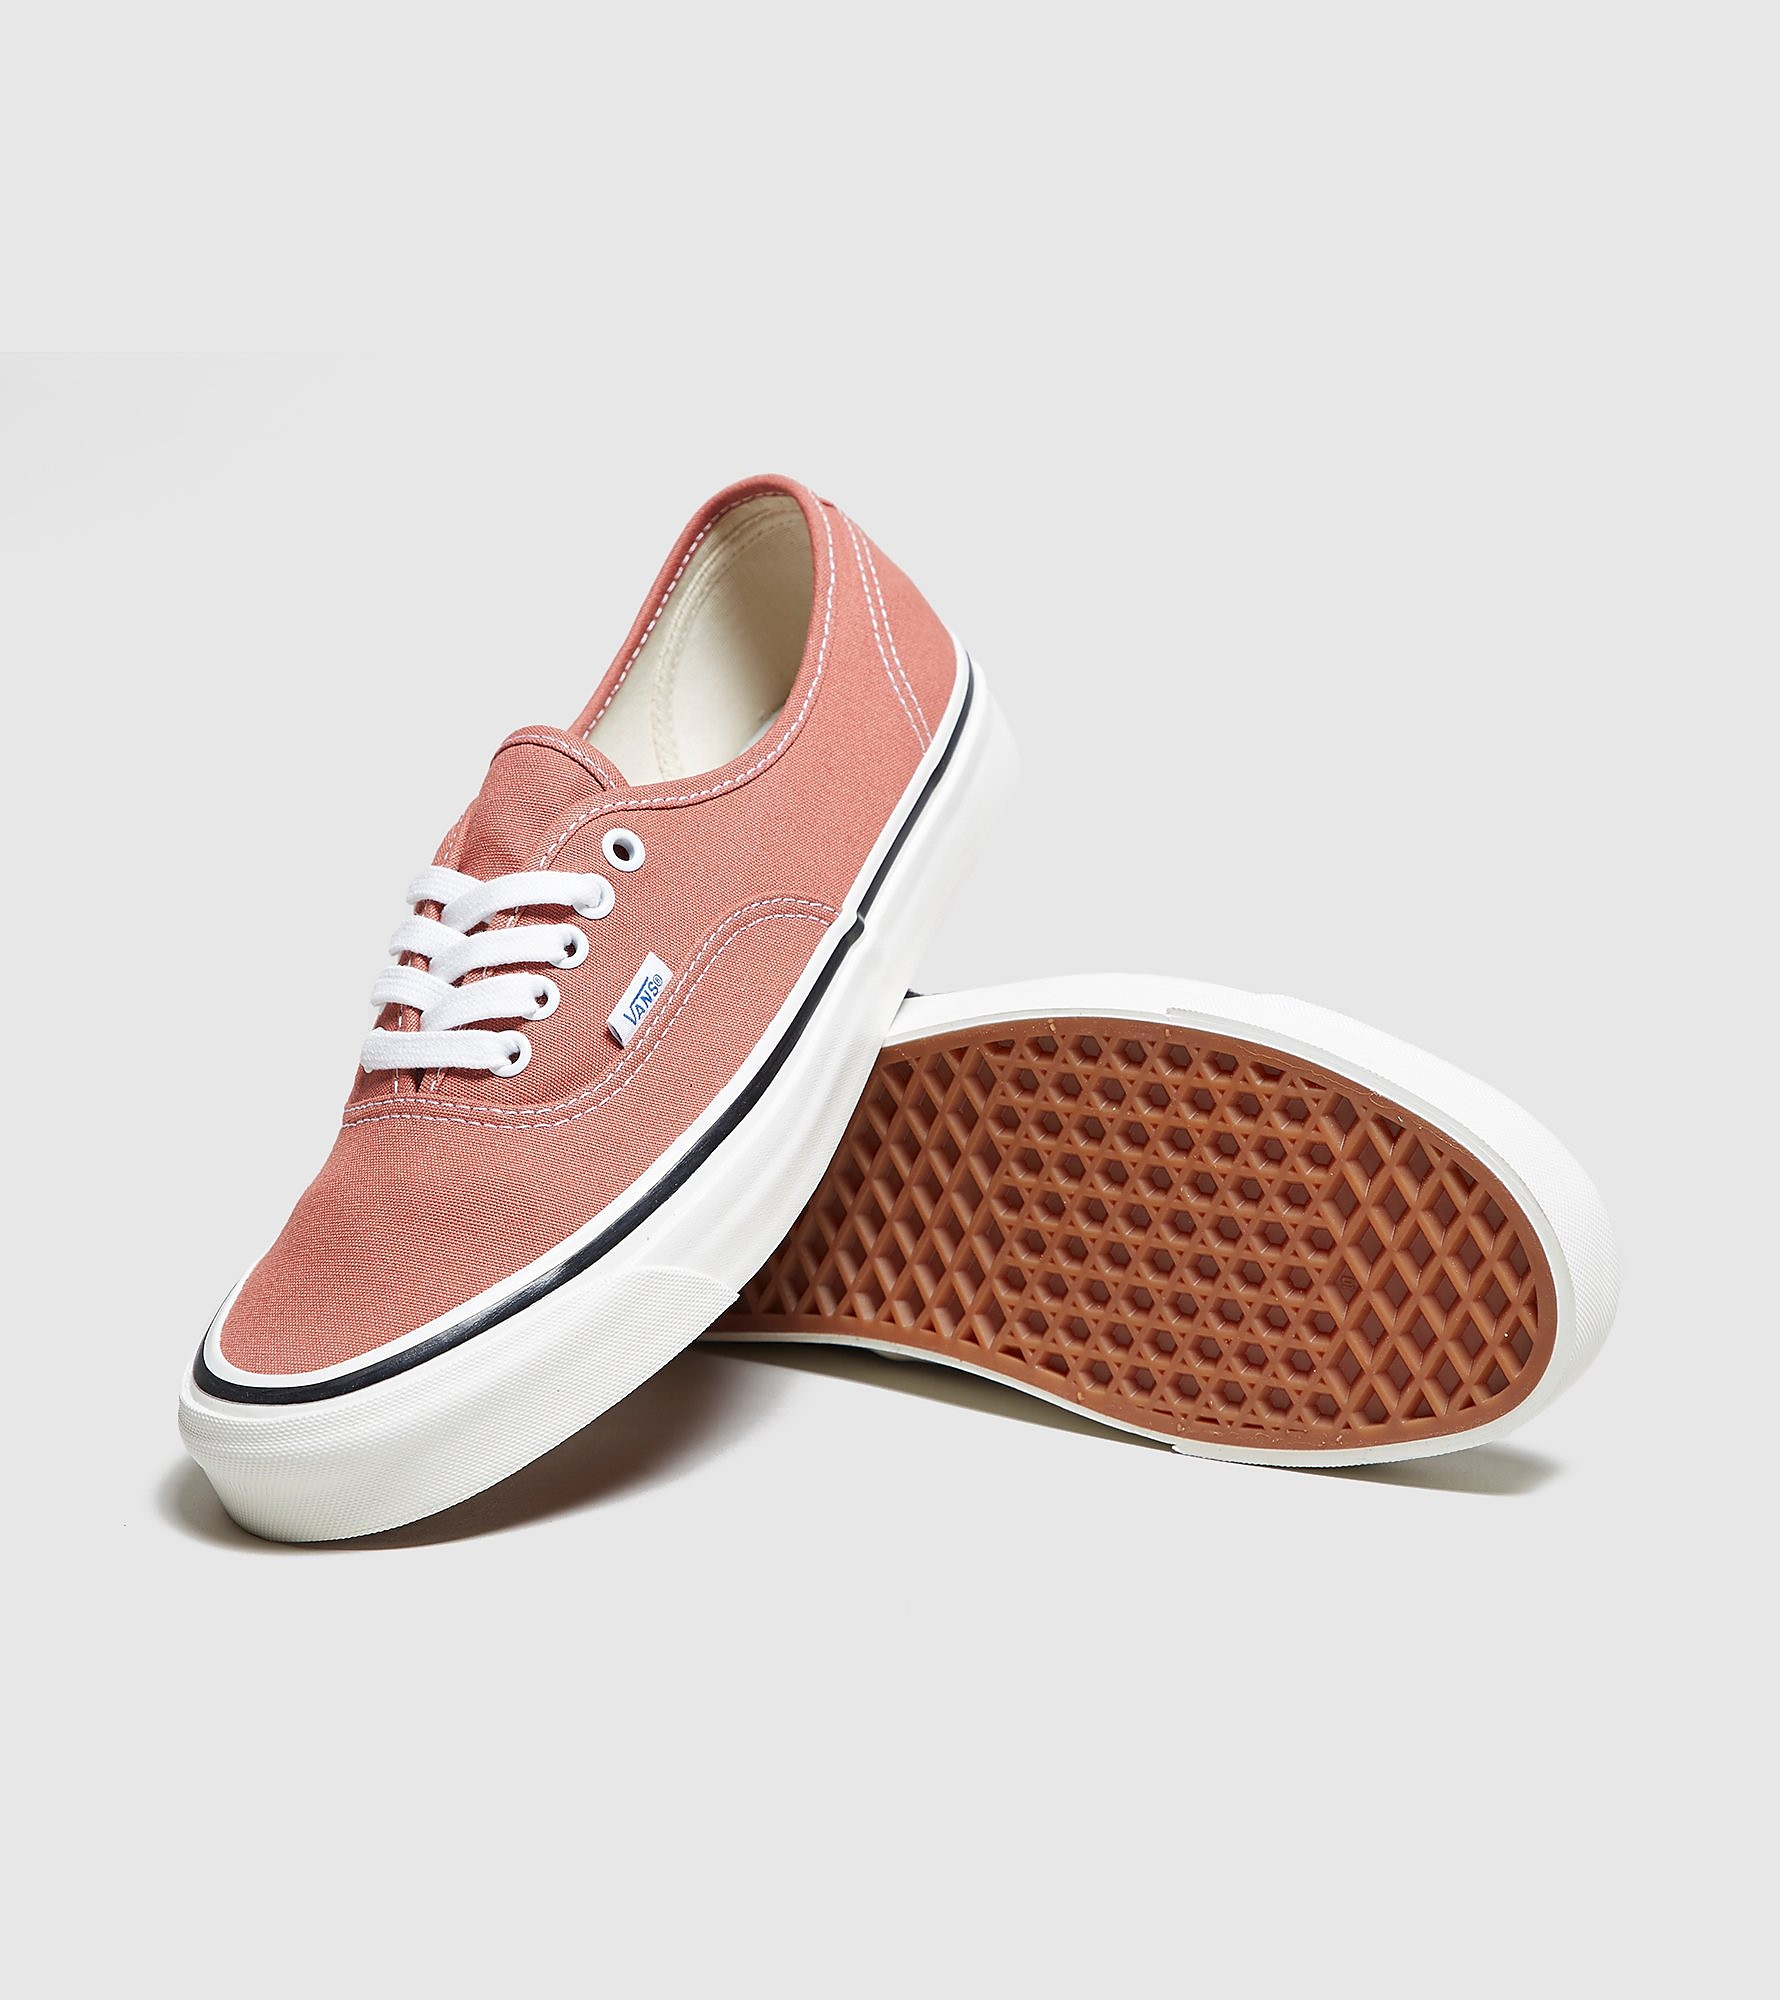 Vans 'Anaheim' Authentic